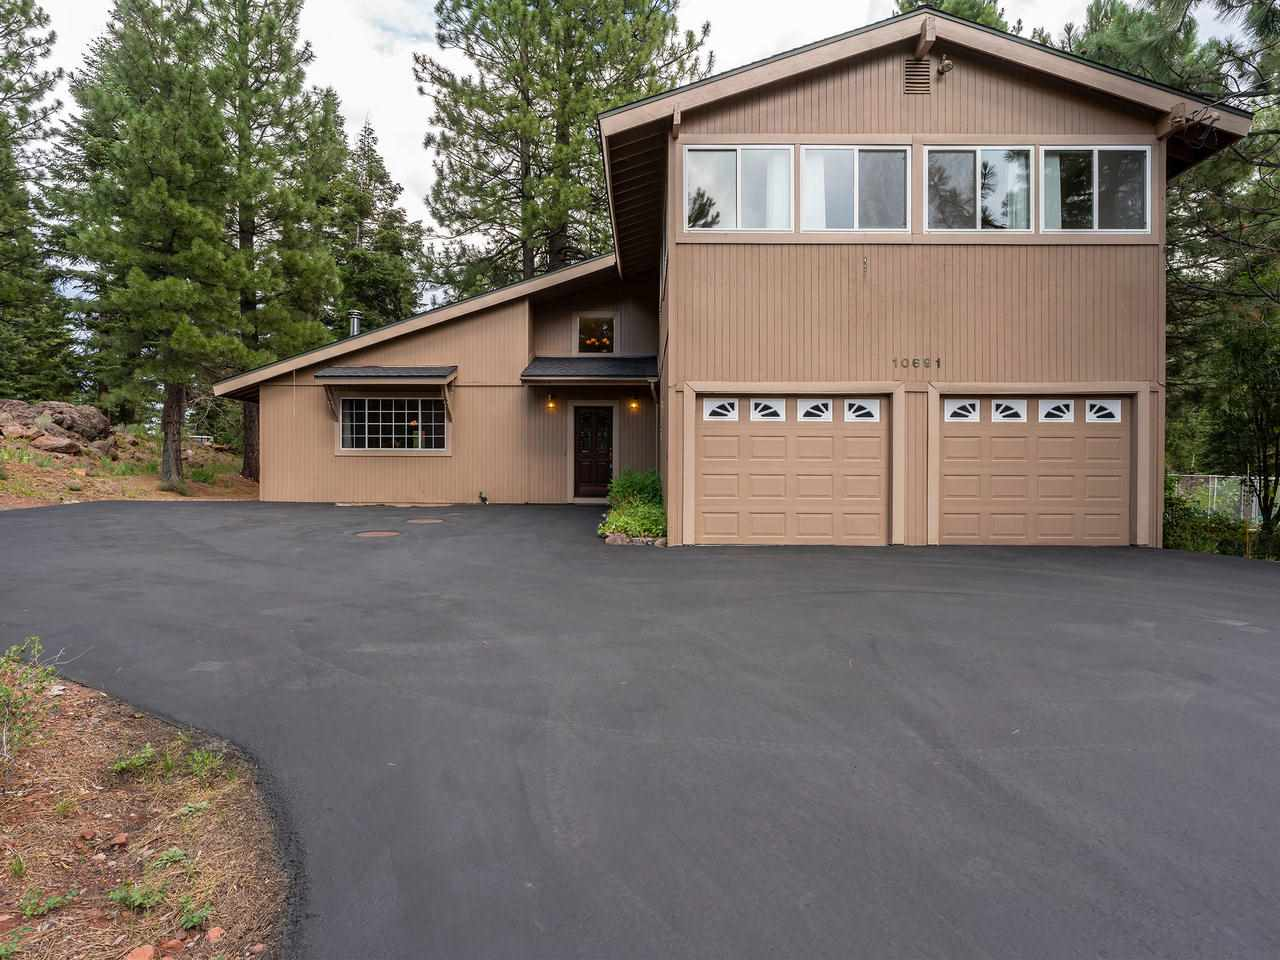 Image for 10691 Ponderosa Drive, Truckee, CA 96161